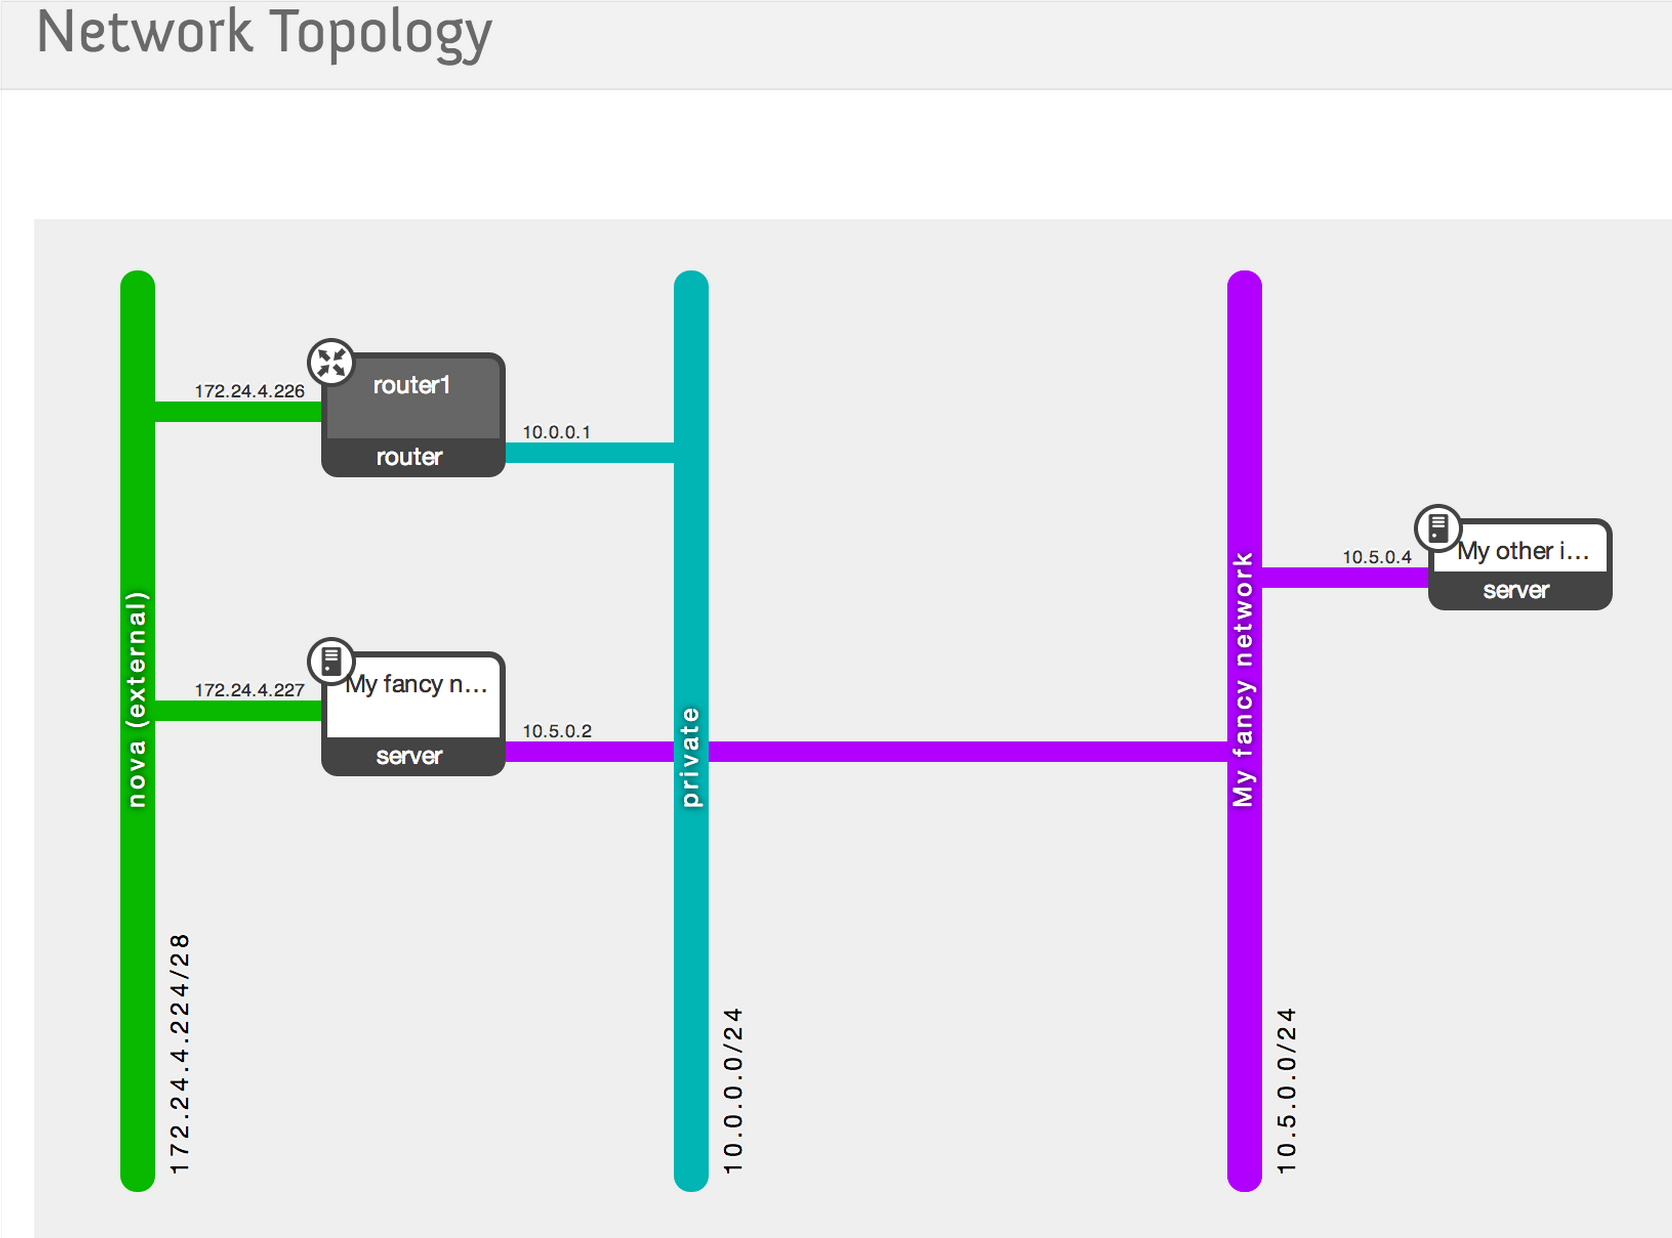 Servosity Disaster Recovery Network Topology